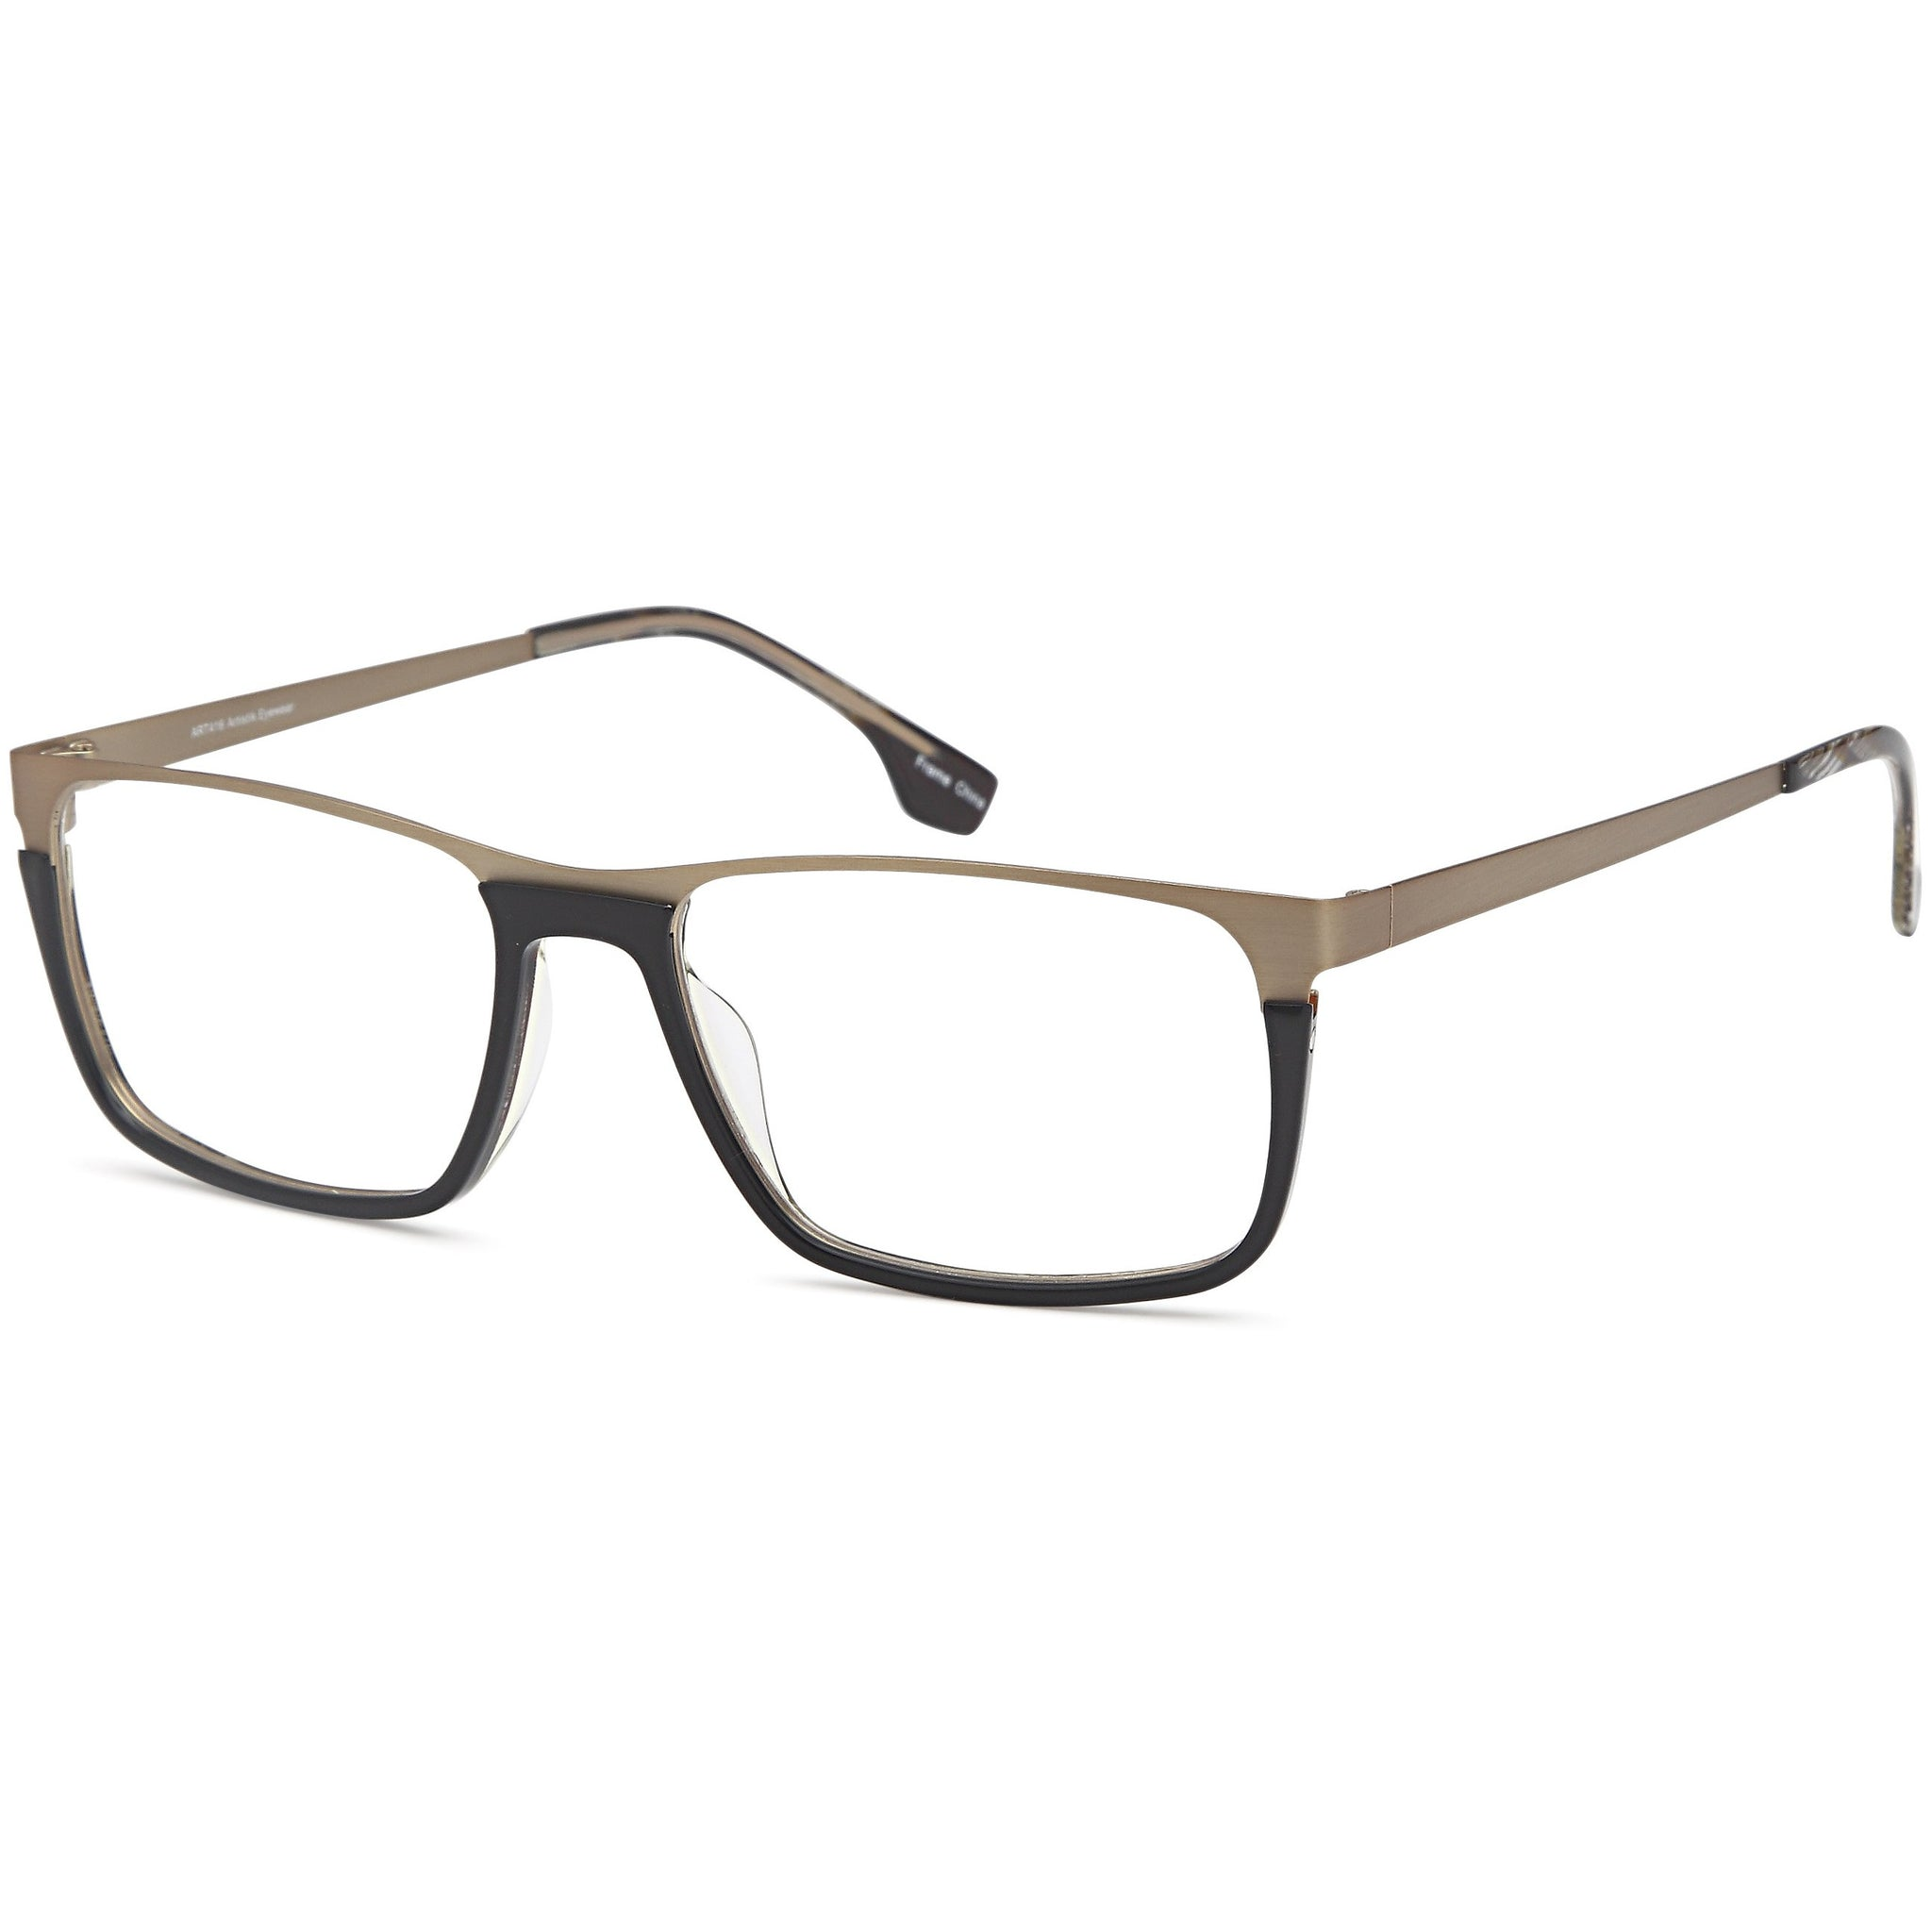 Sophistics Prescription Glasses ART 416 Frame